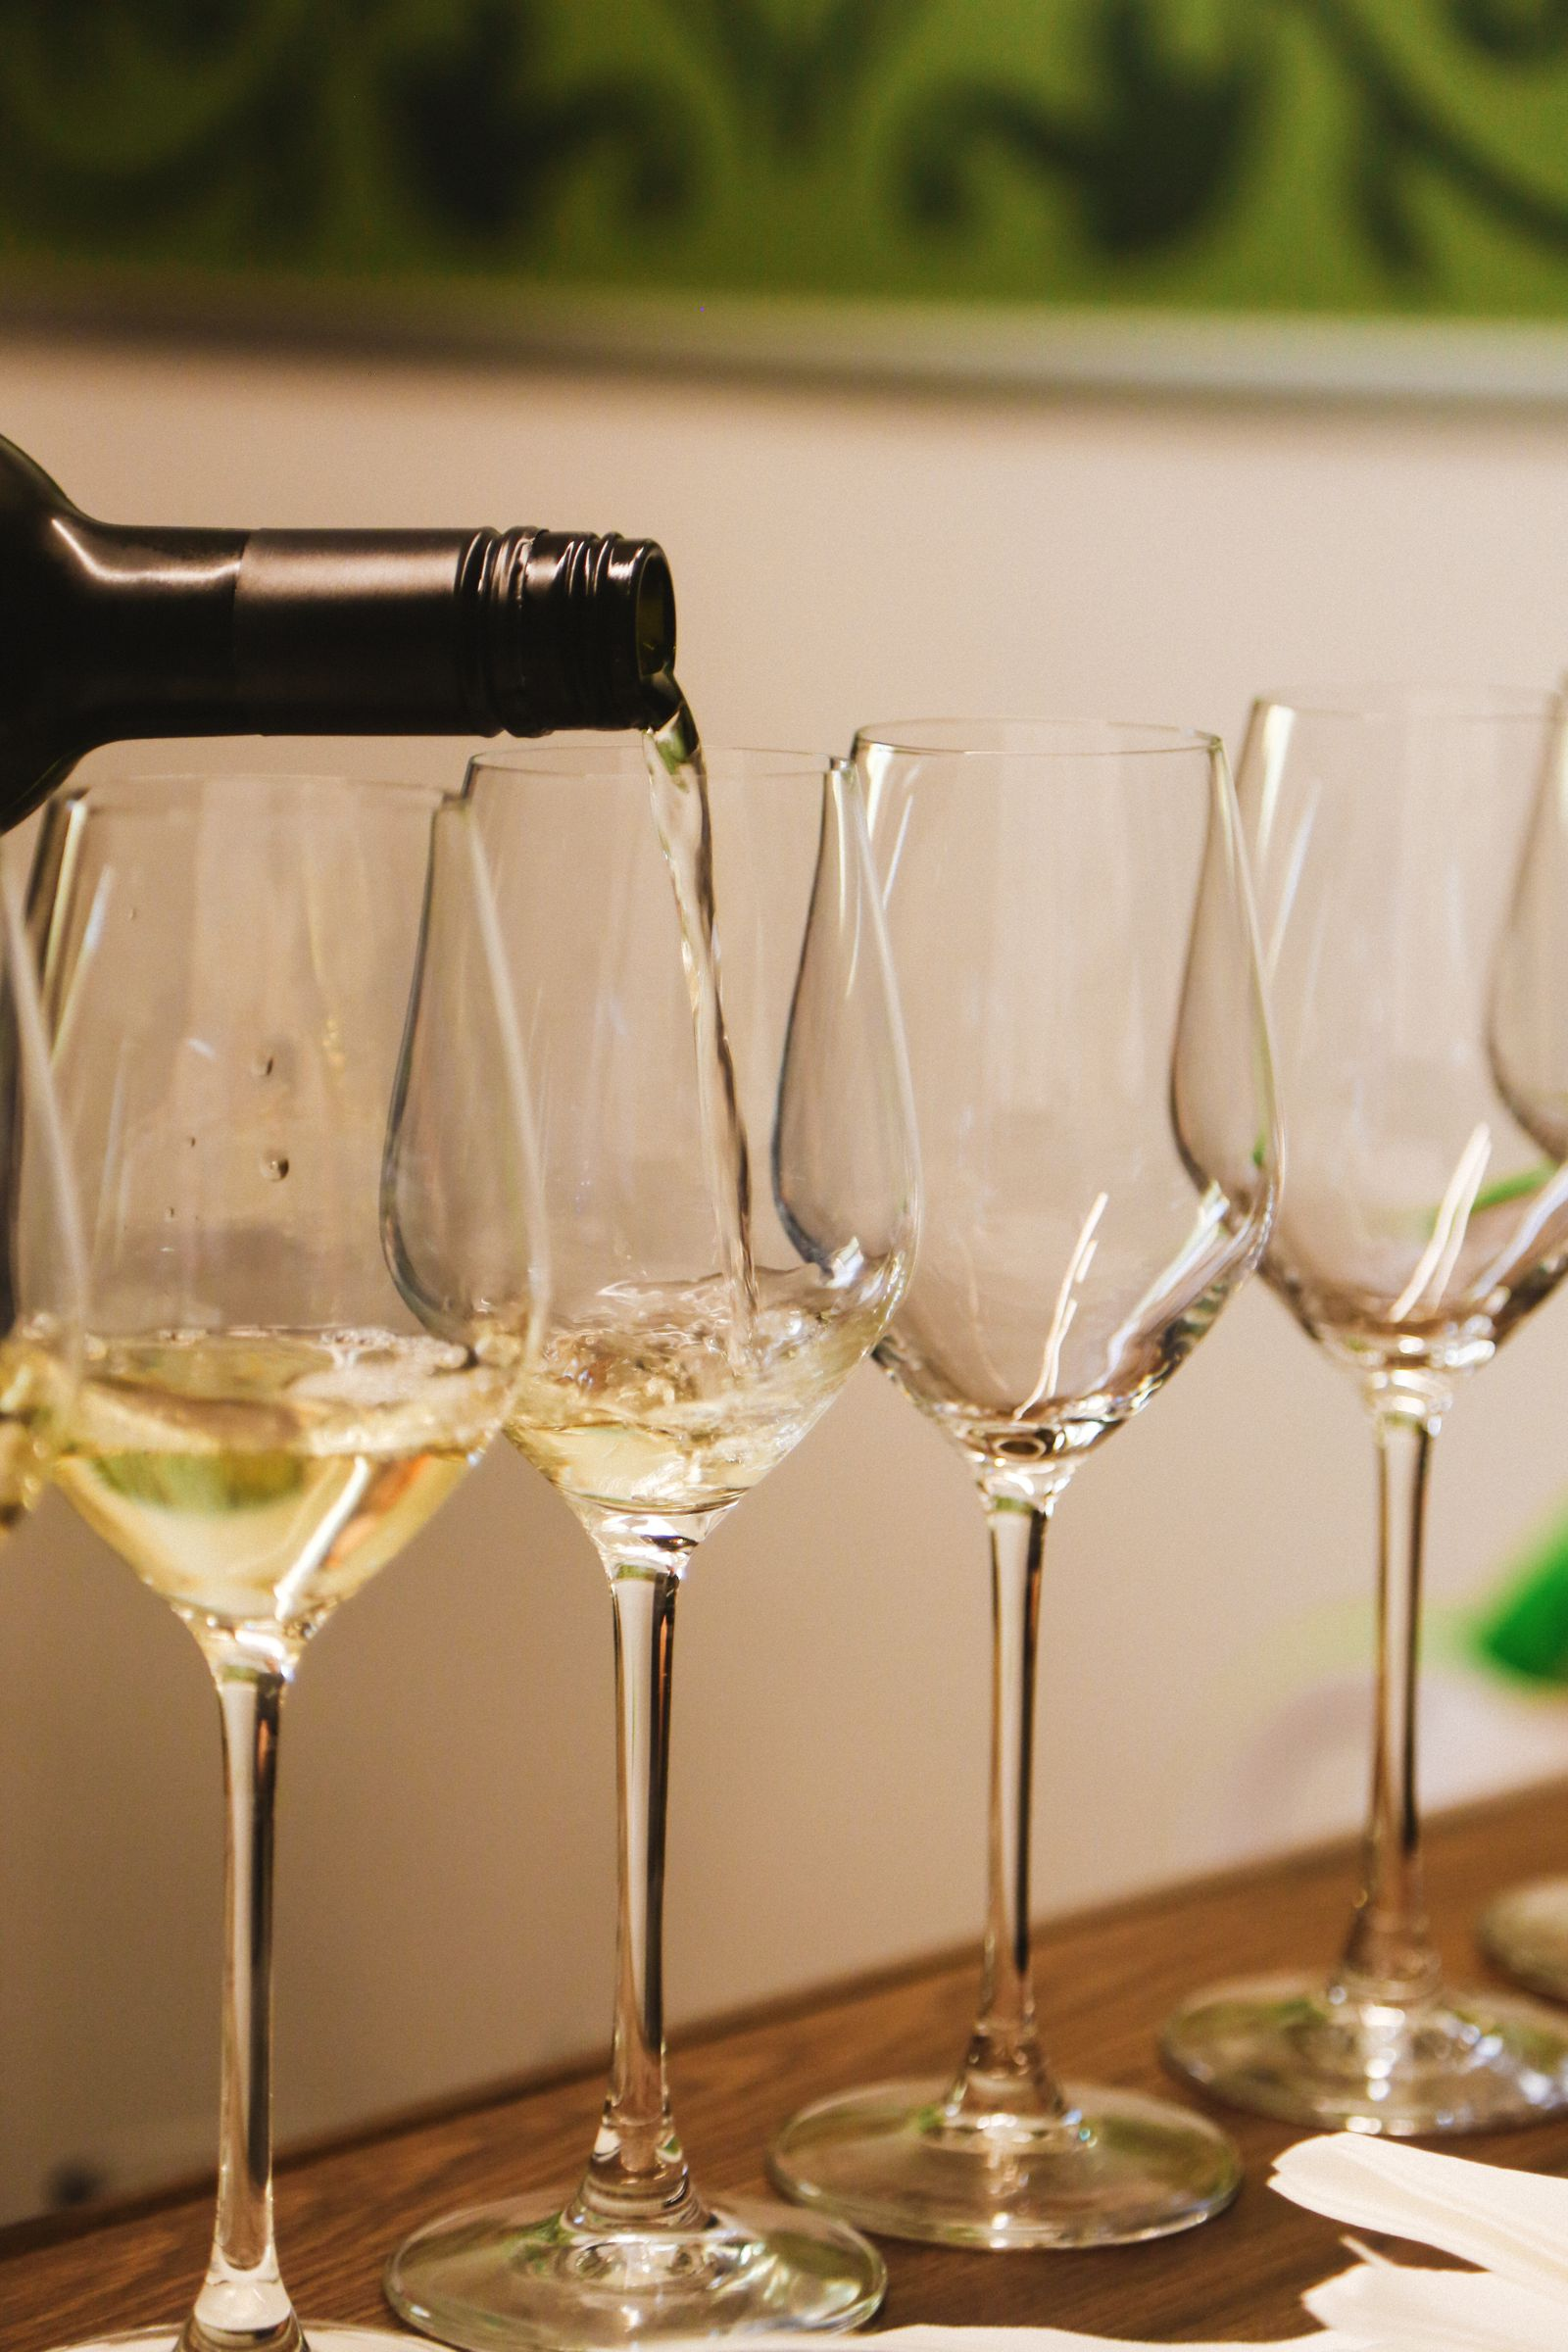 There's A Big Reason You Should Visit Slovenia This Year - The Wine! (51)